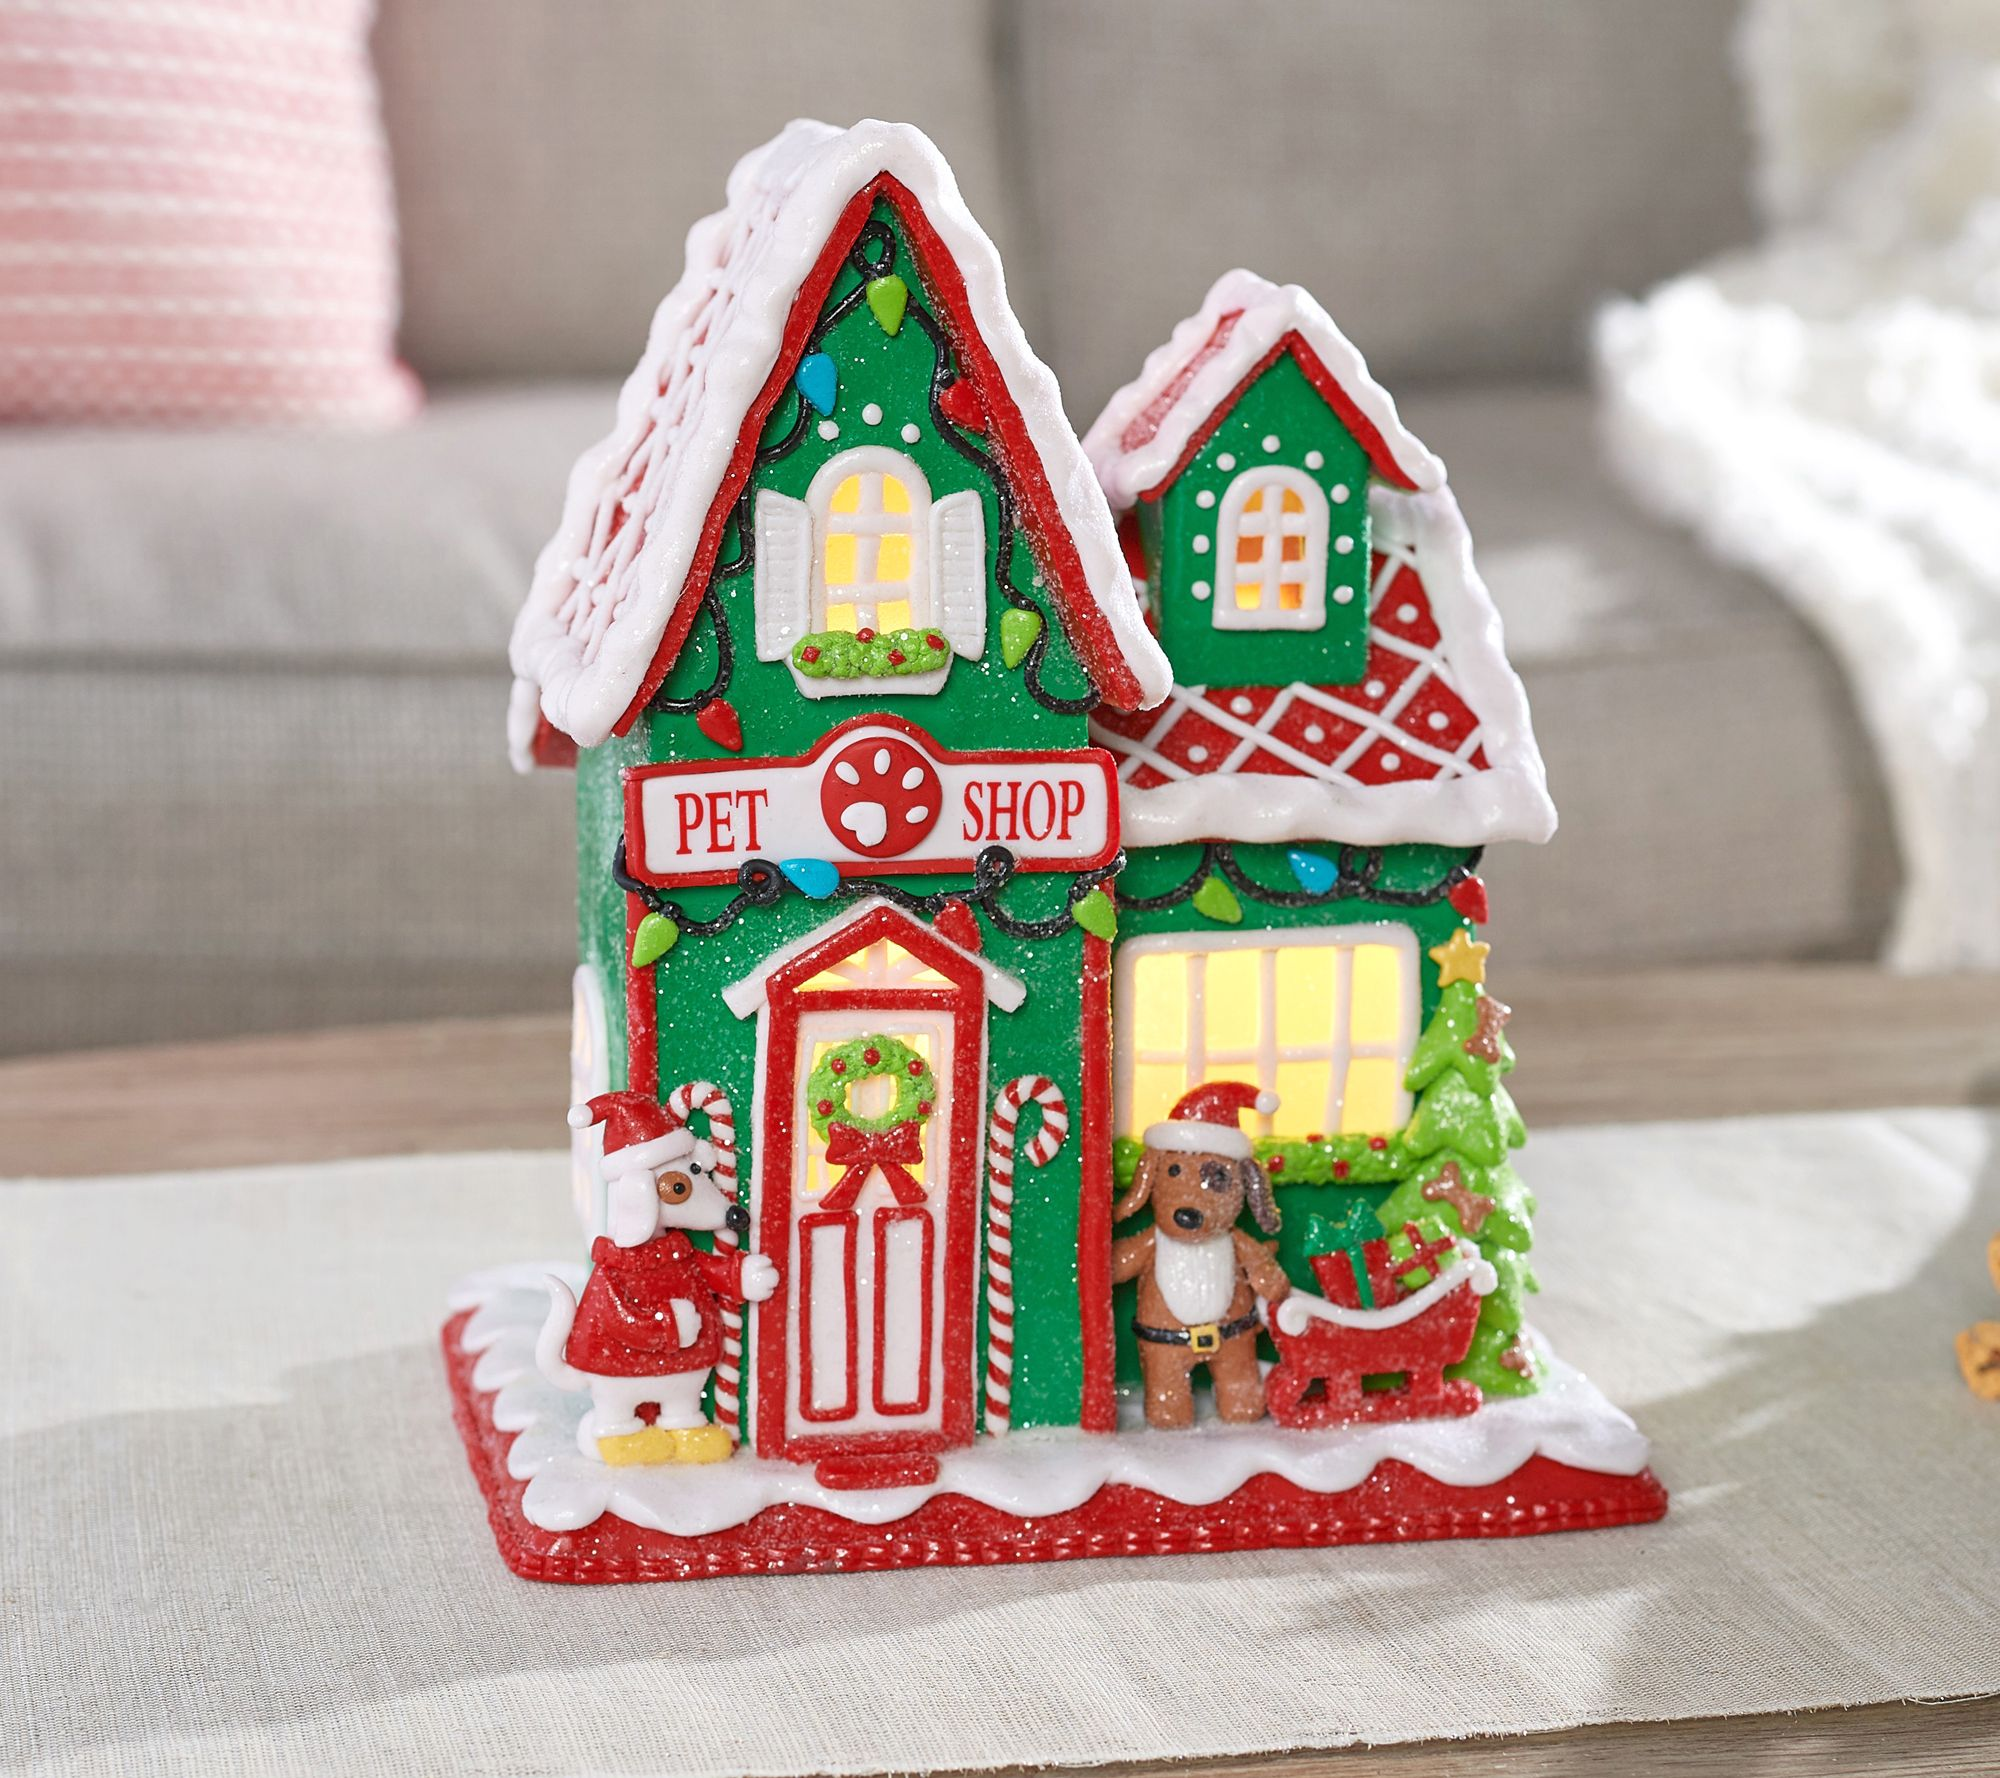 Outdoor Gingerbread House. Choice Of Illuminated 9